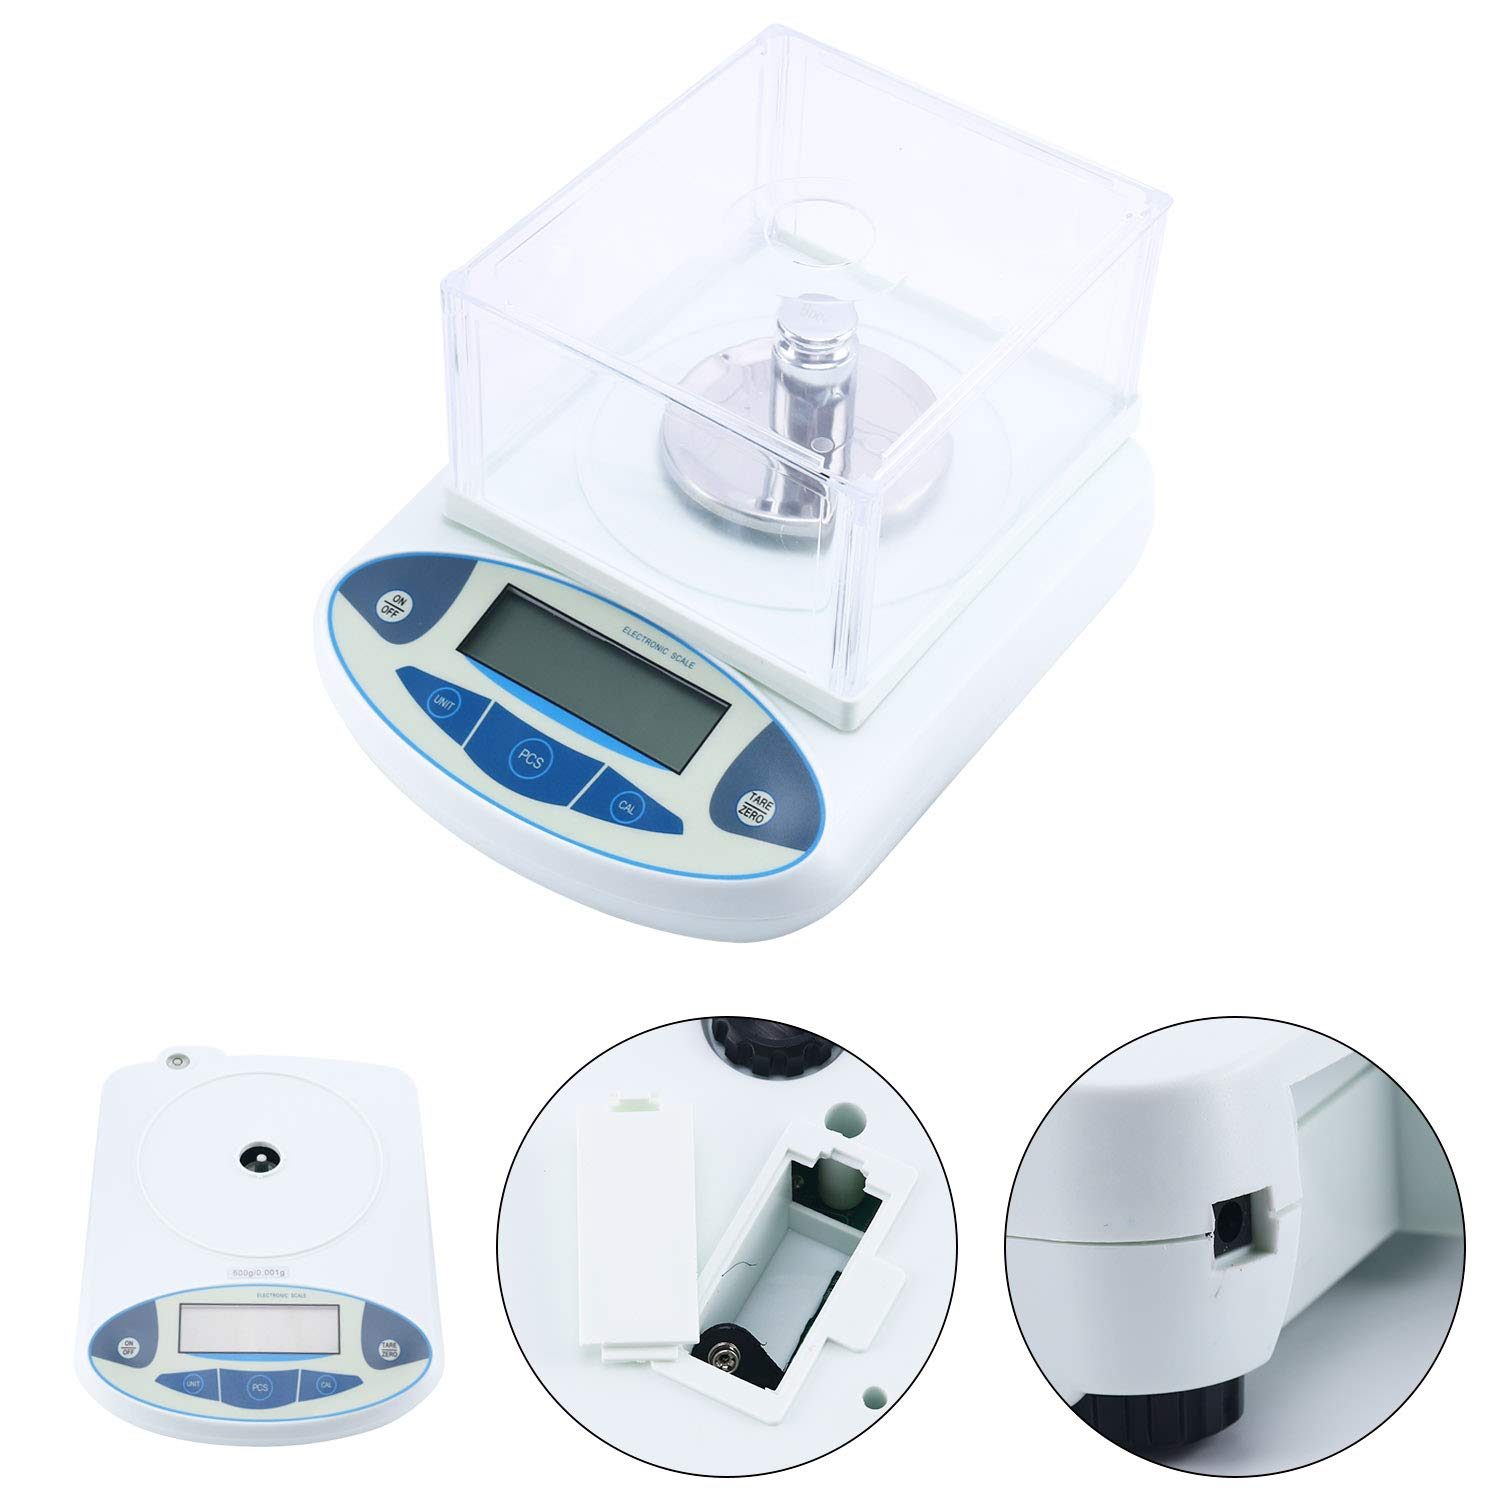 100/200/500 x0.001g 1mg Lab Analytical Balance Digital High Precision Electronic Scale Jewelry Scale (500x0.001g)